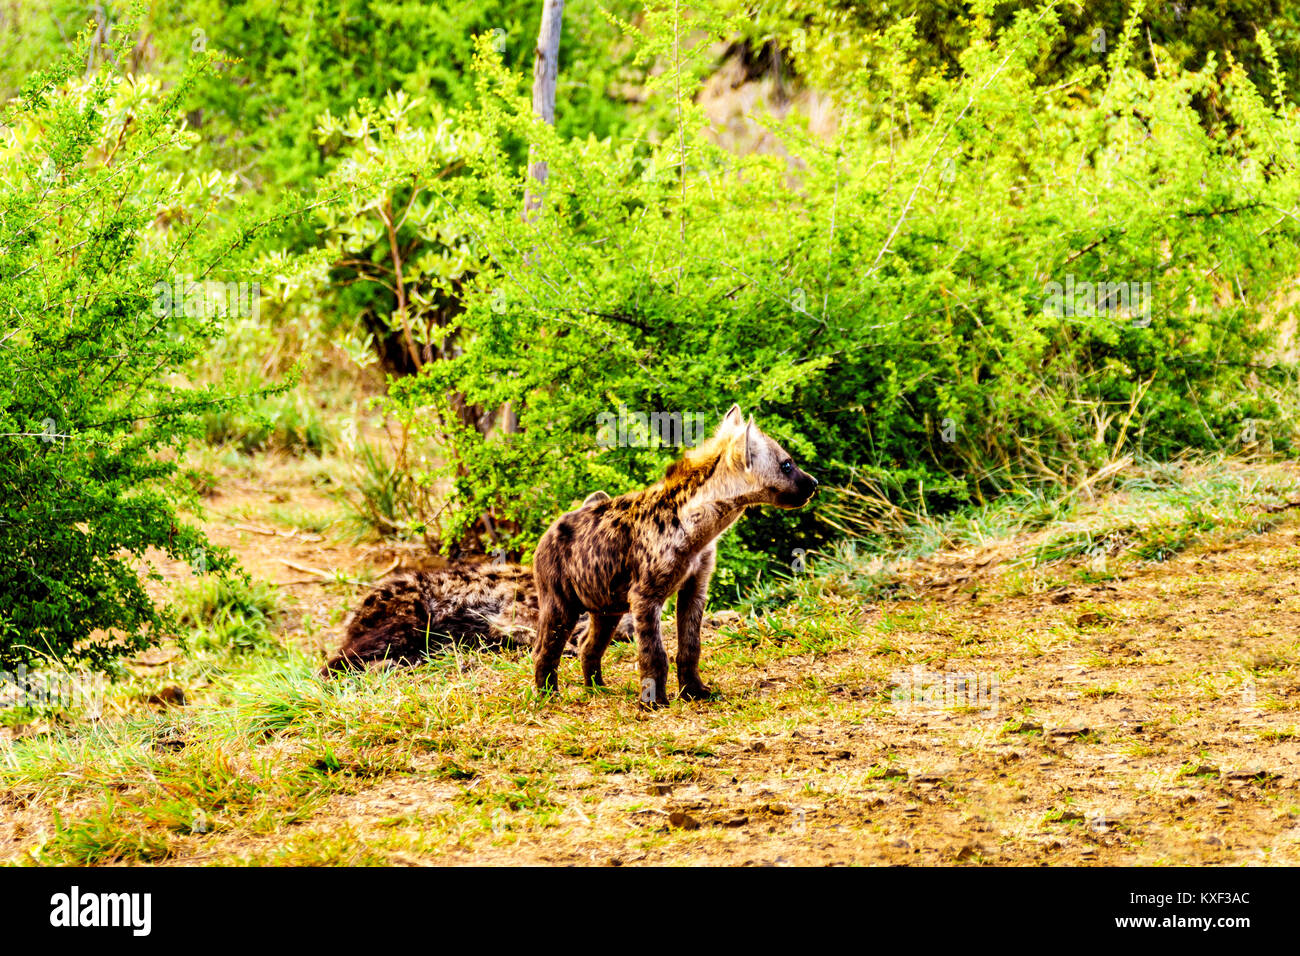 Juvenile Hyena in Kruger National Park in South Africa - Stock Image